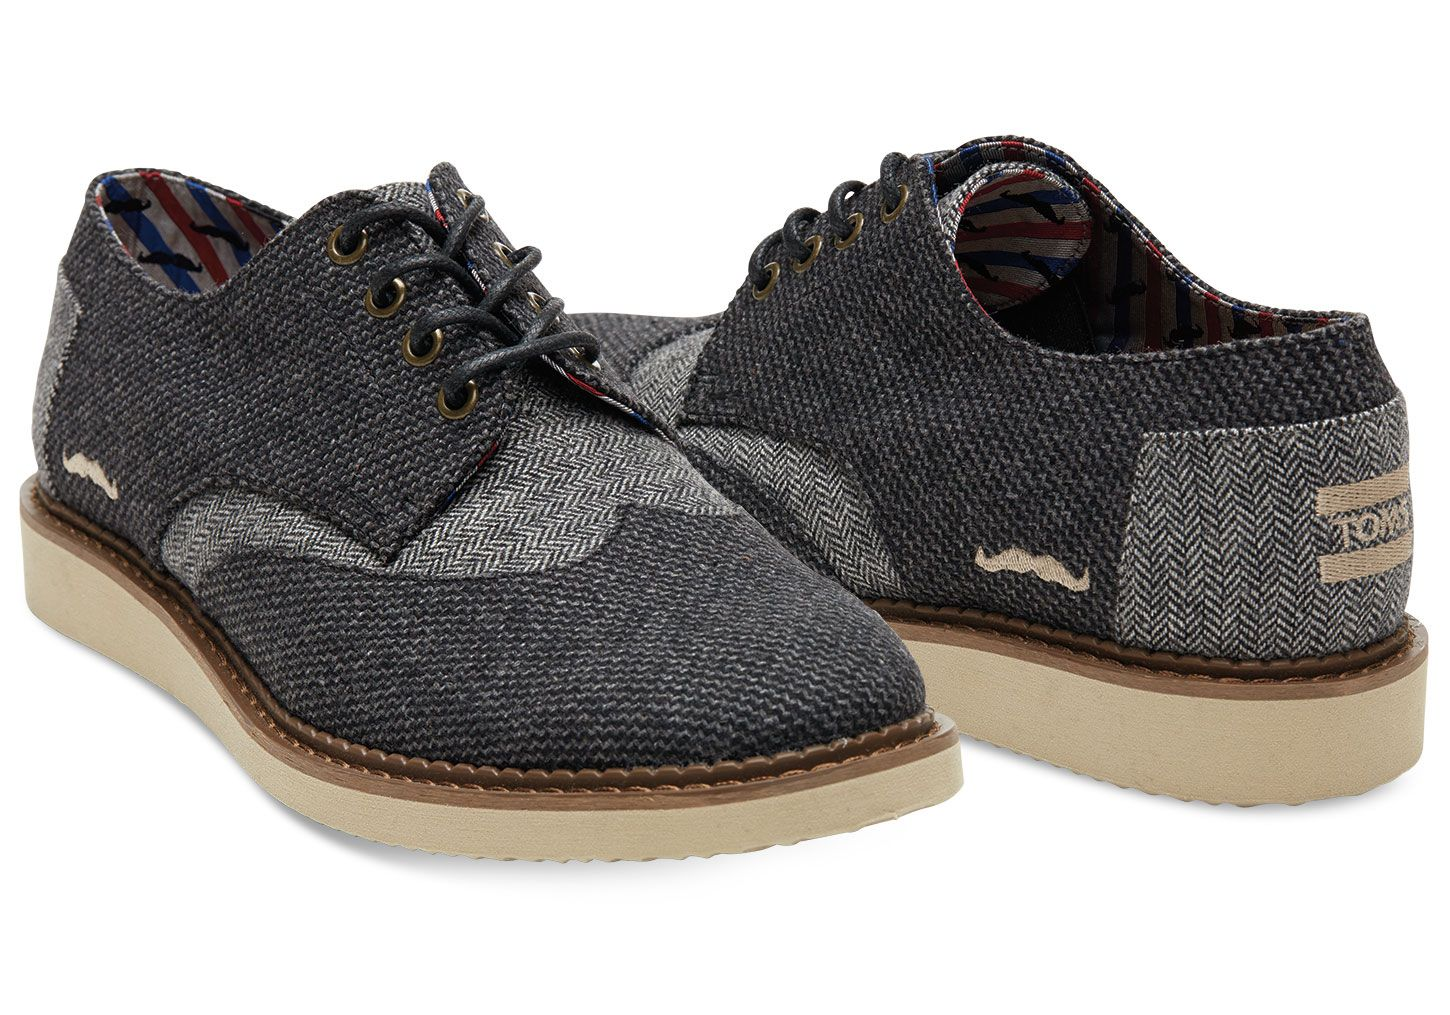 Movember x Toms Footwear recommend